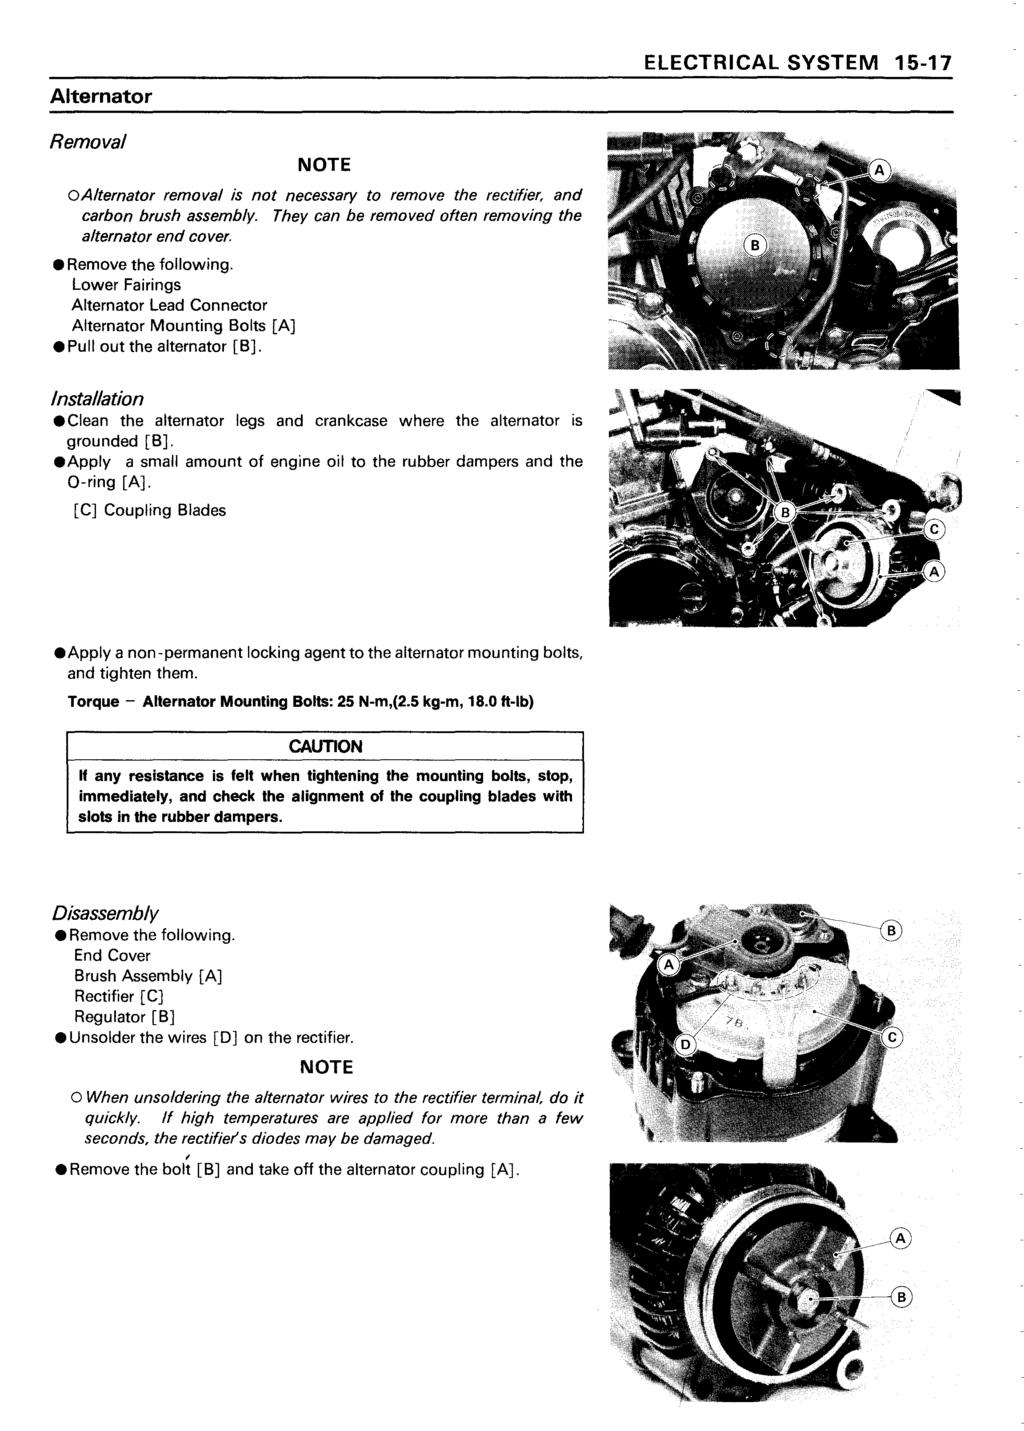 Ninja Zx 11 Zz R1100 Kawasaki Motorcycle Service Manual Pdf Zx11 Wiring Diagram Alternator Electrical System 15 17 Removal Note Oalternator Is Not Necessary To Remove The